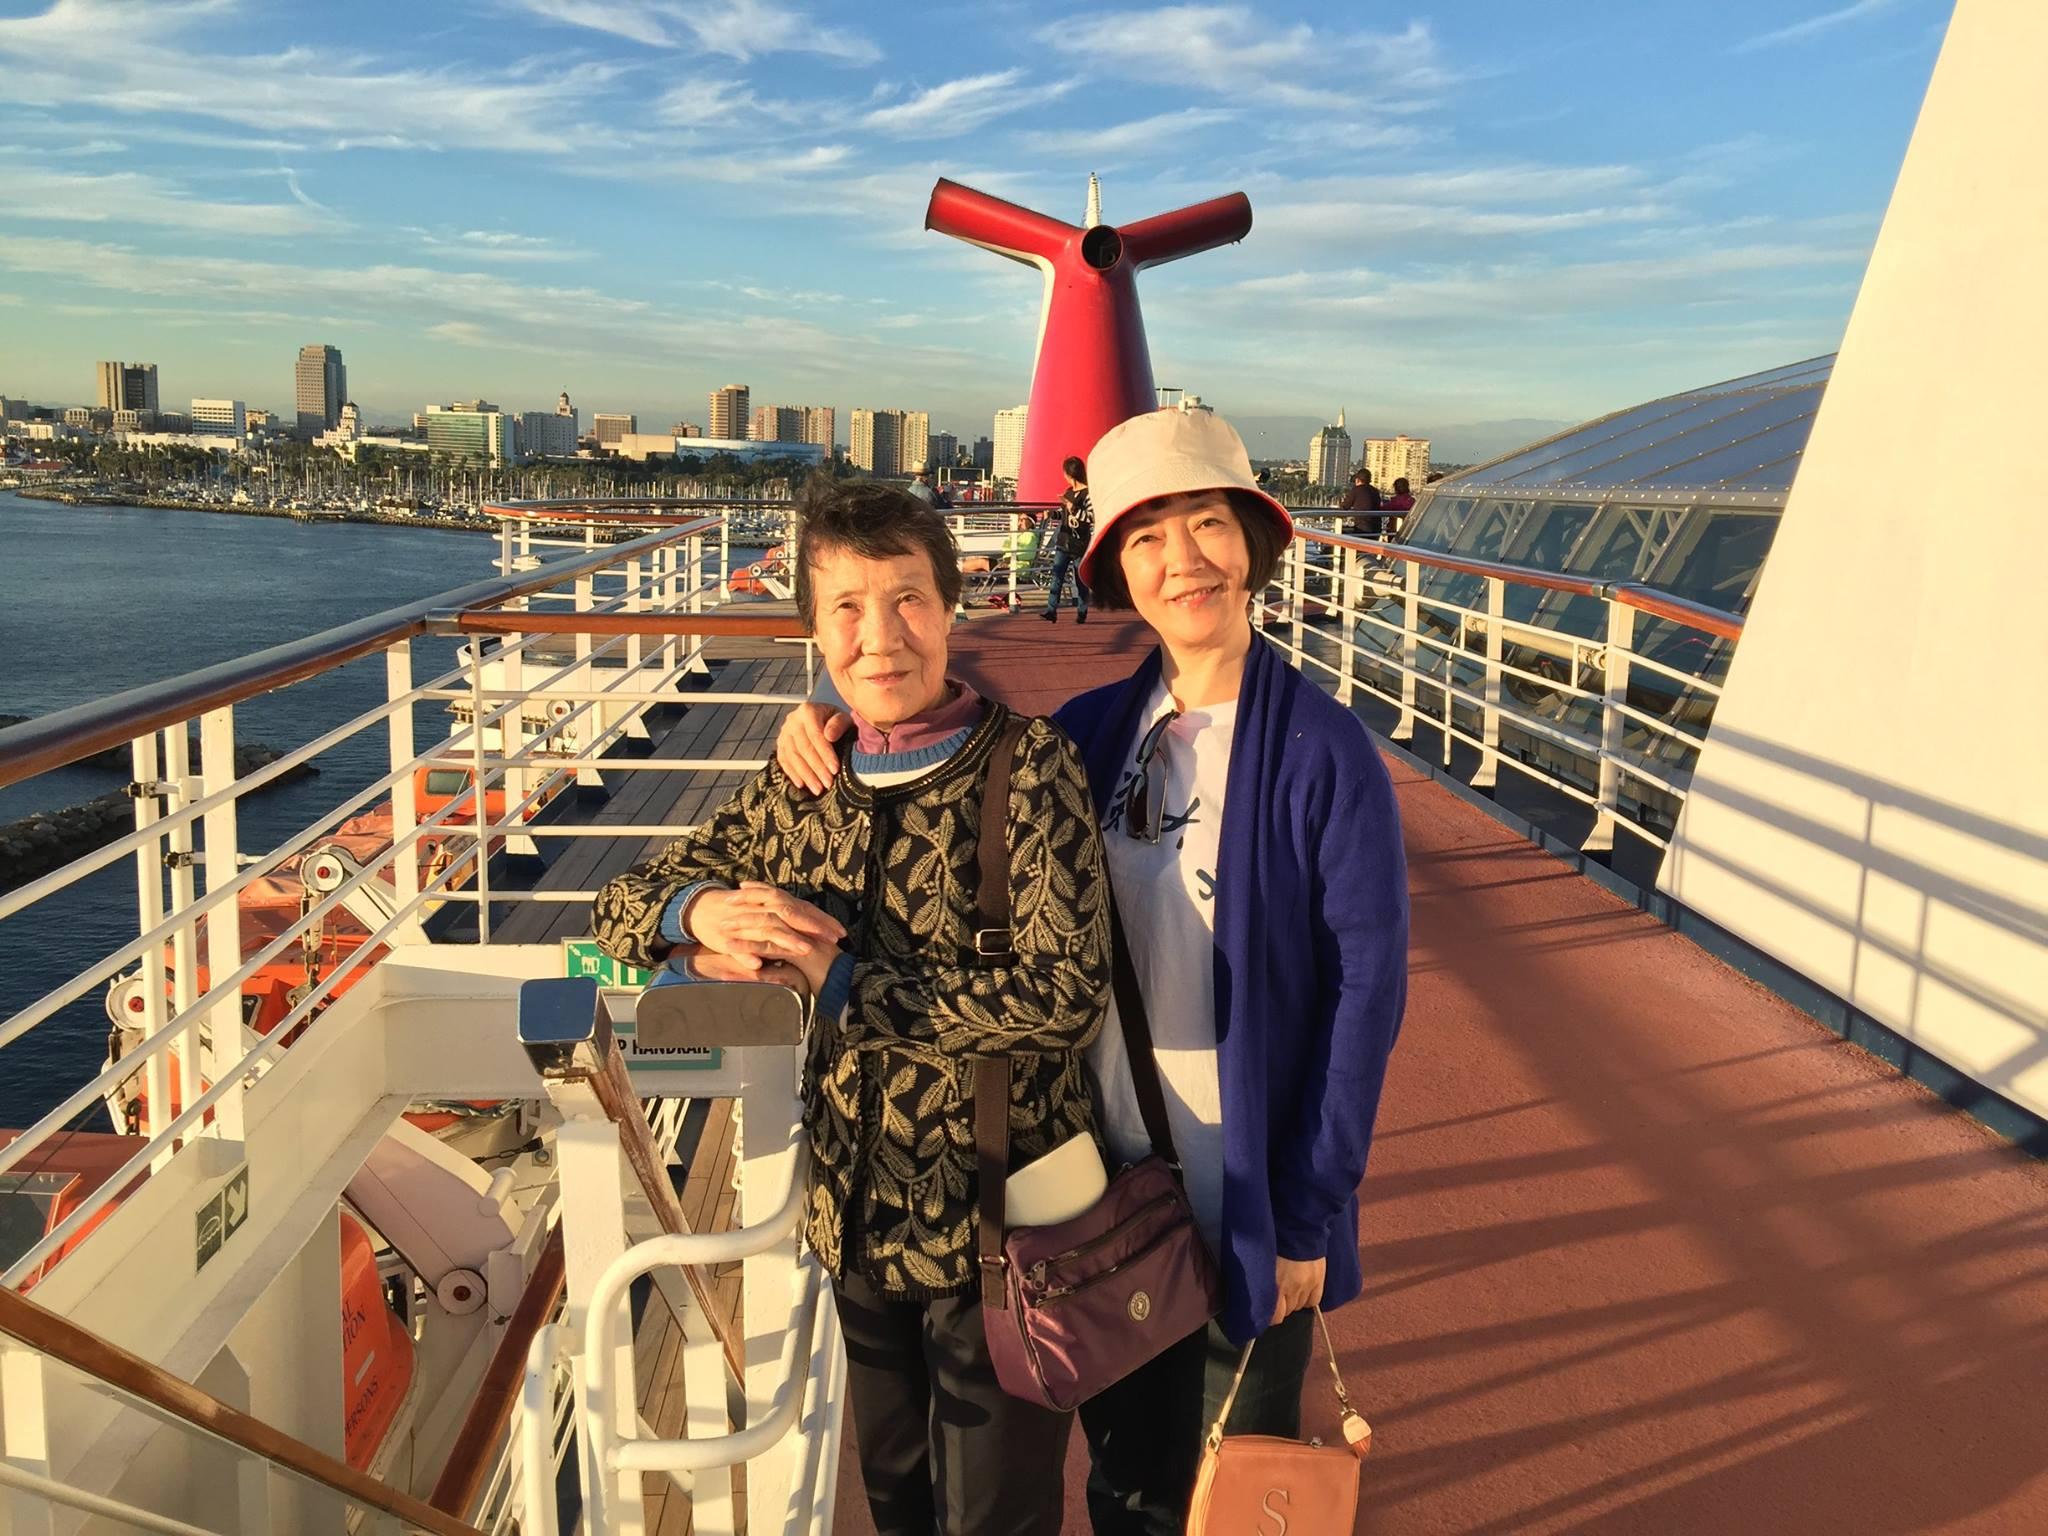 On the deck of Carnival Imagination with my mom in golden sunset light. 在金色的夕陽中,與母親一起登上狂想號遊輪(Carnival Imagination)